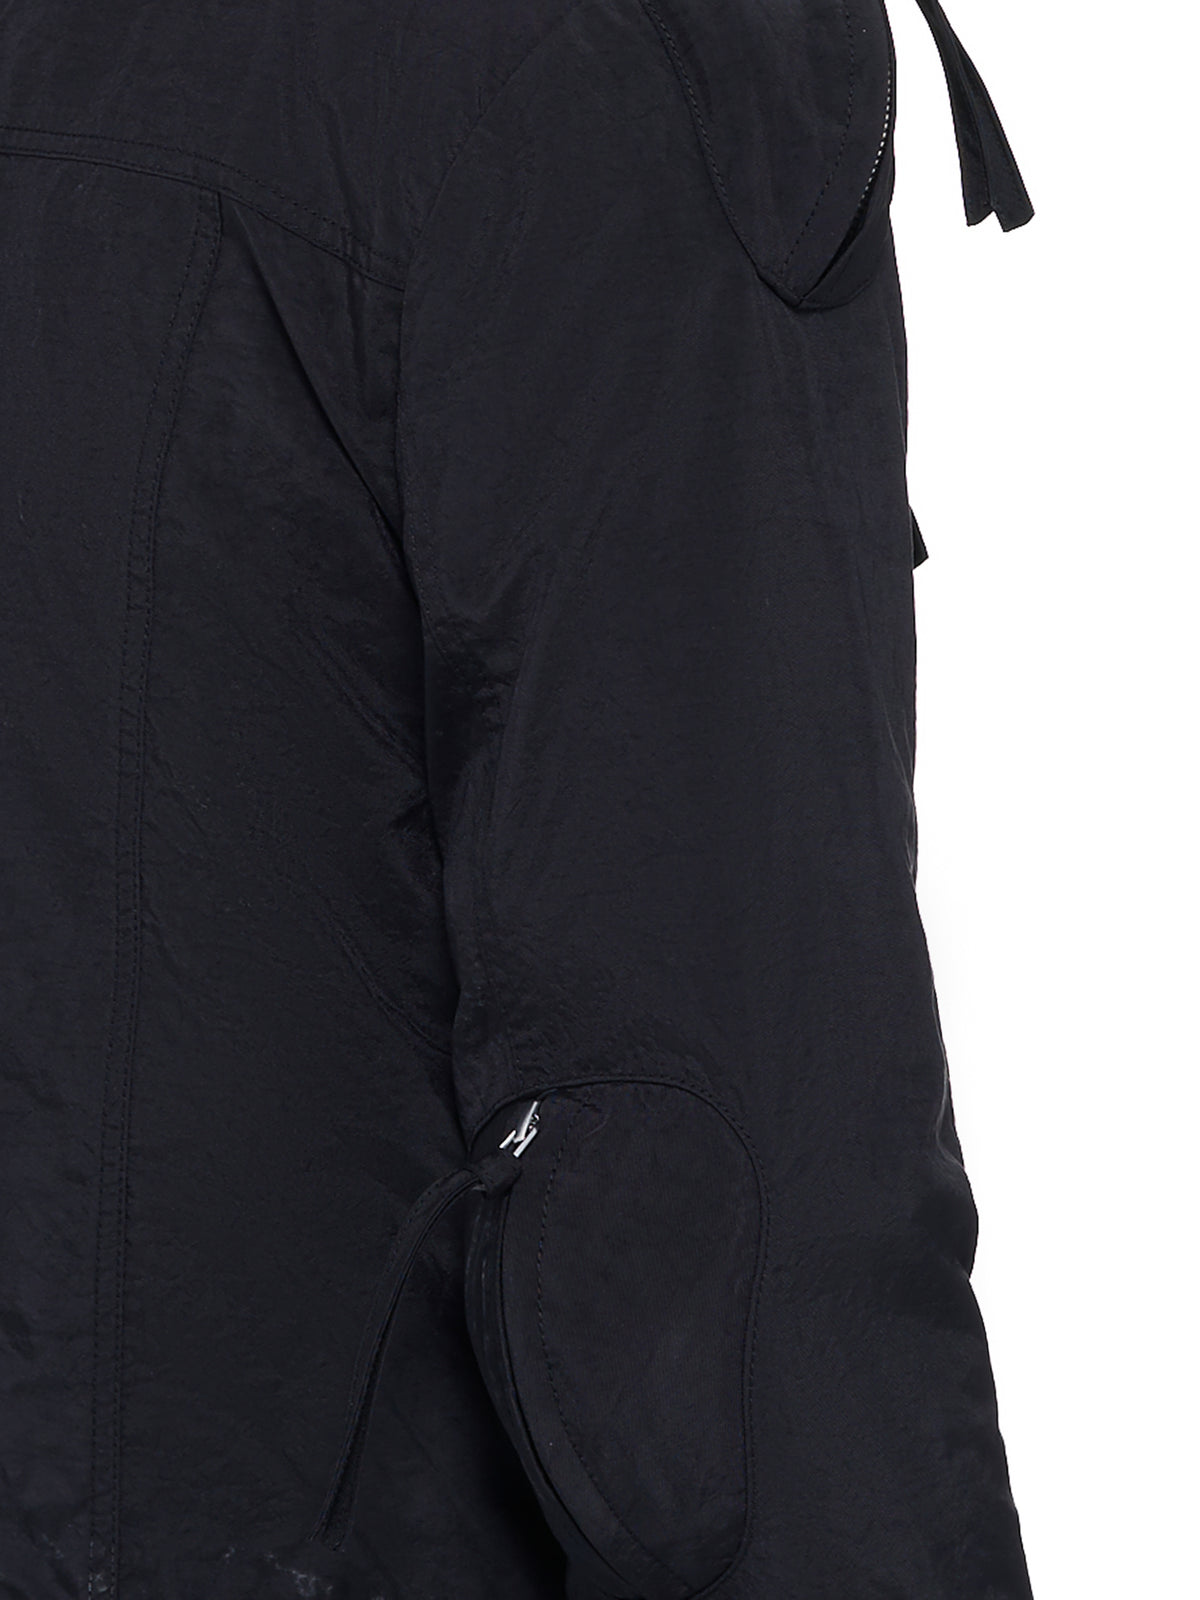 Airbag Shoulder-Guarded Trucker Jacket (RMA21SSJK04-BLACK)